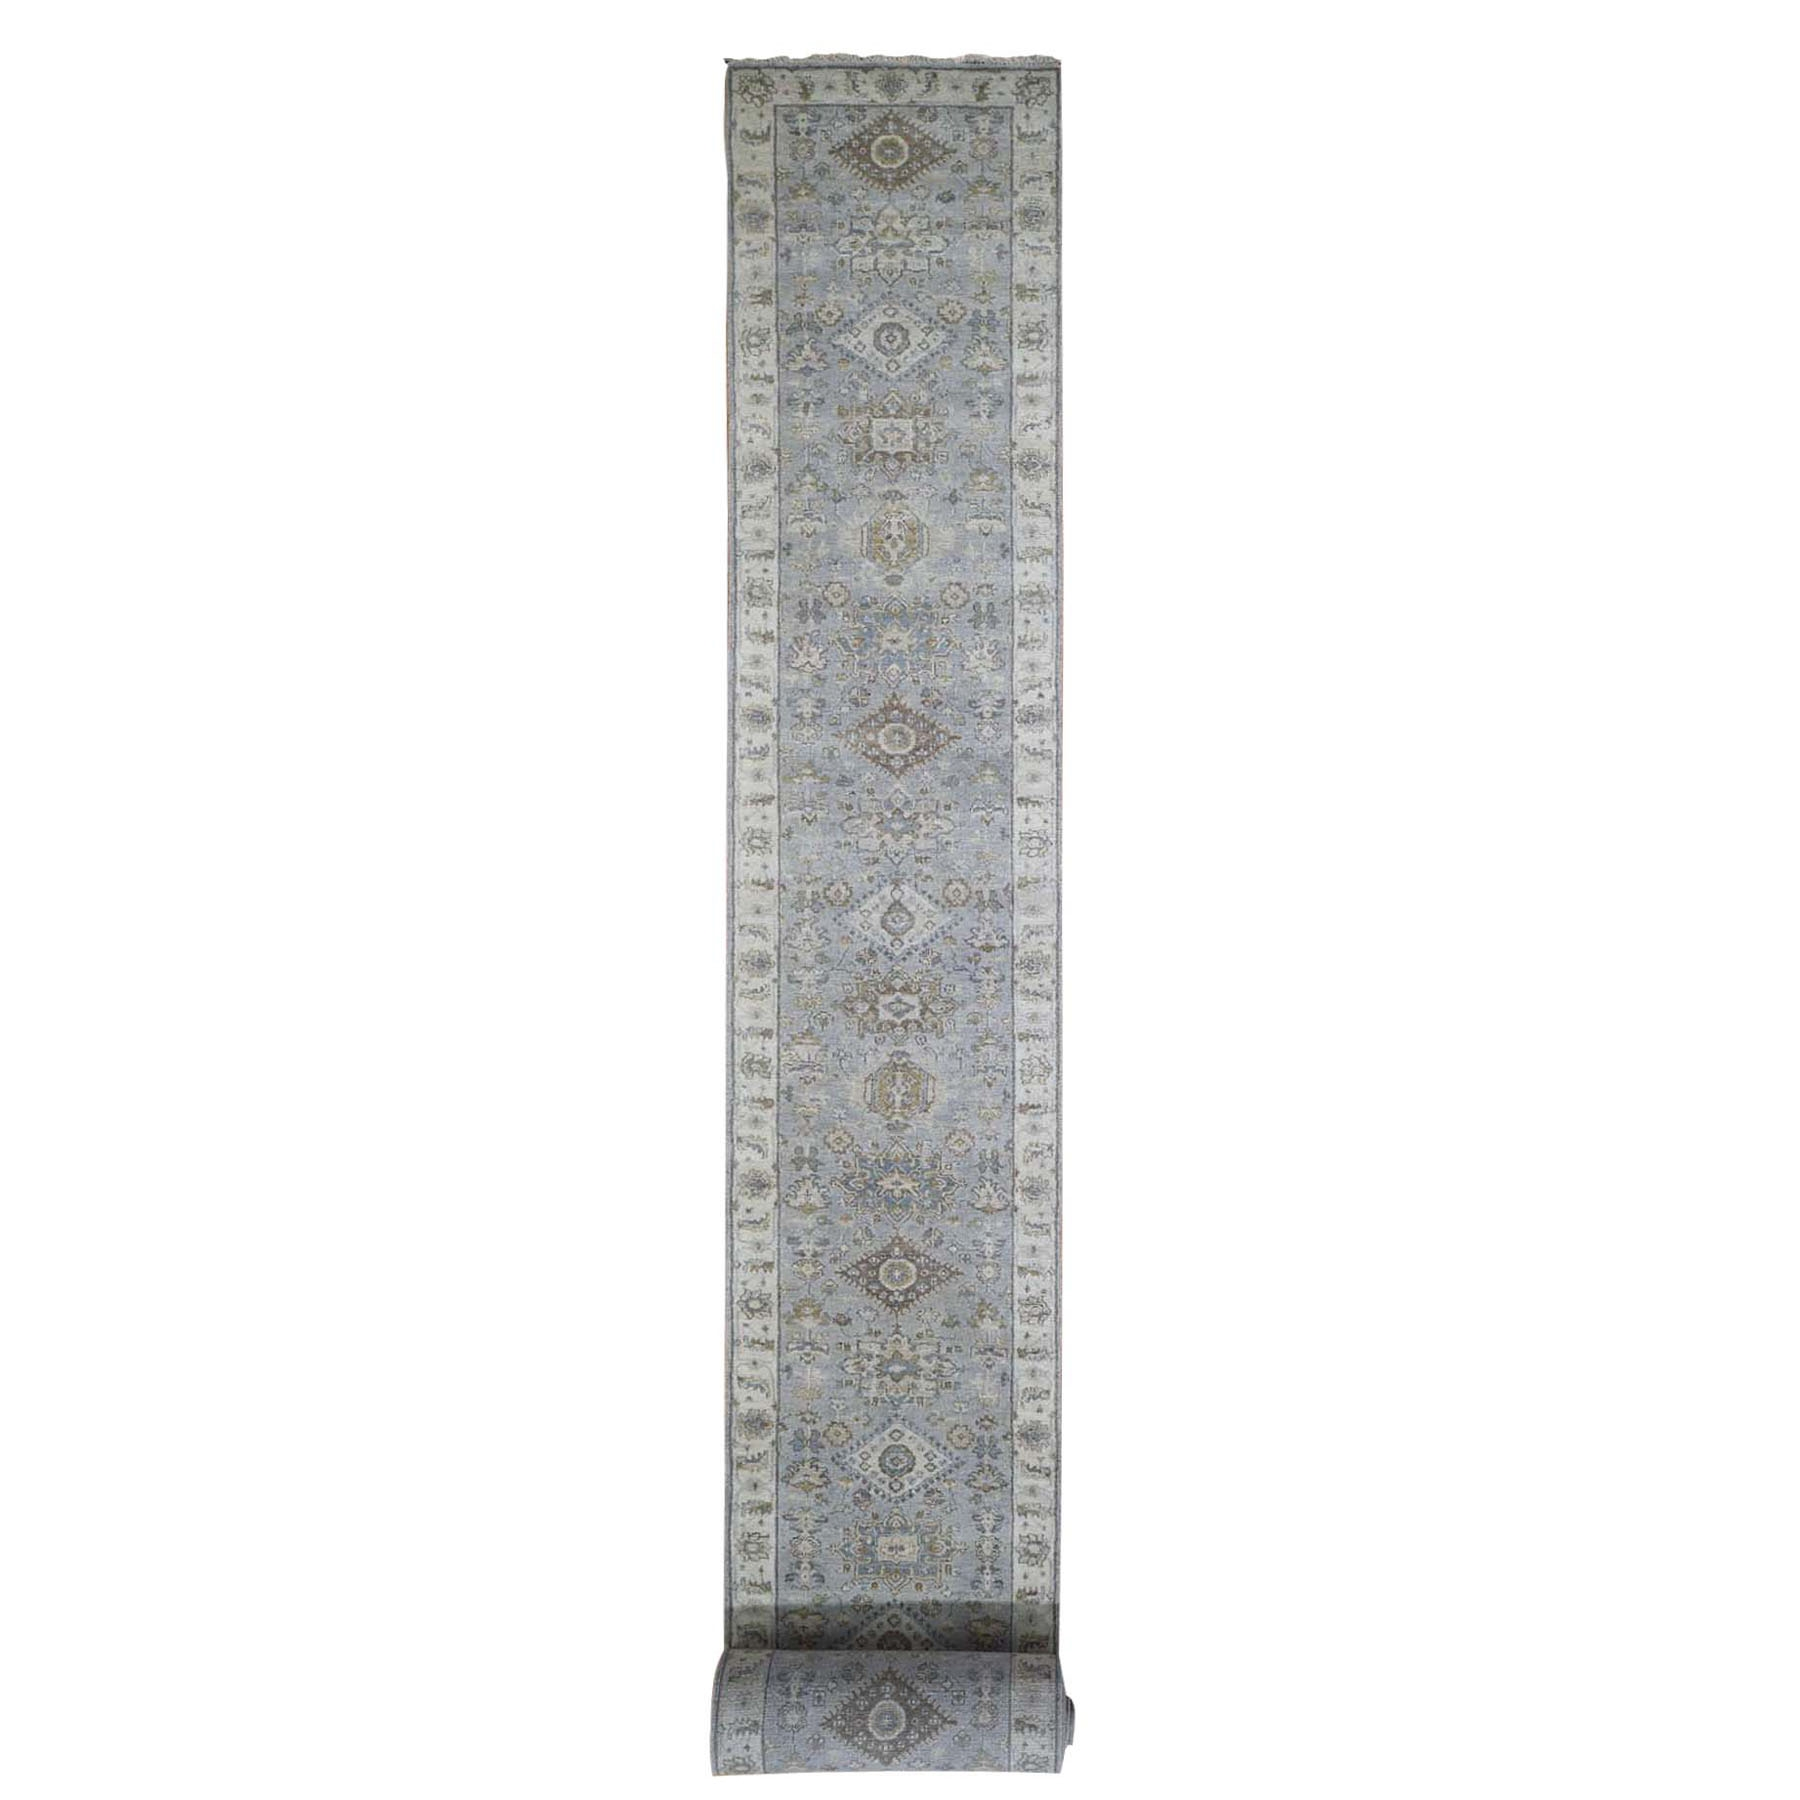 "2'8""X22' Gray Karajeh Design Pure Wool Hand Knotted Xl Runner Oriental Rug moad9dcd"